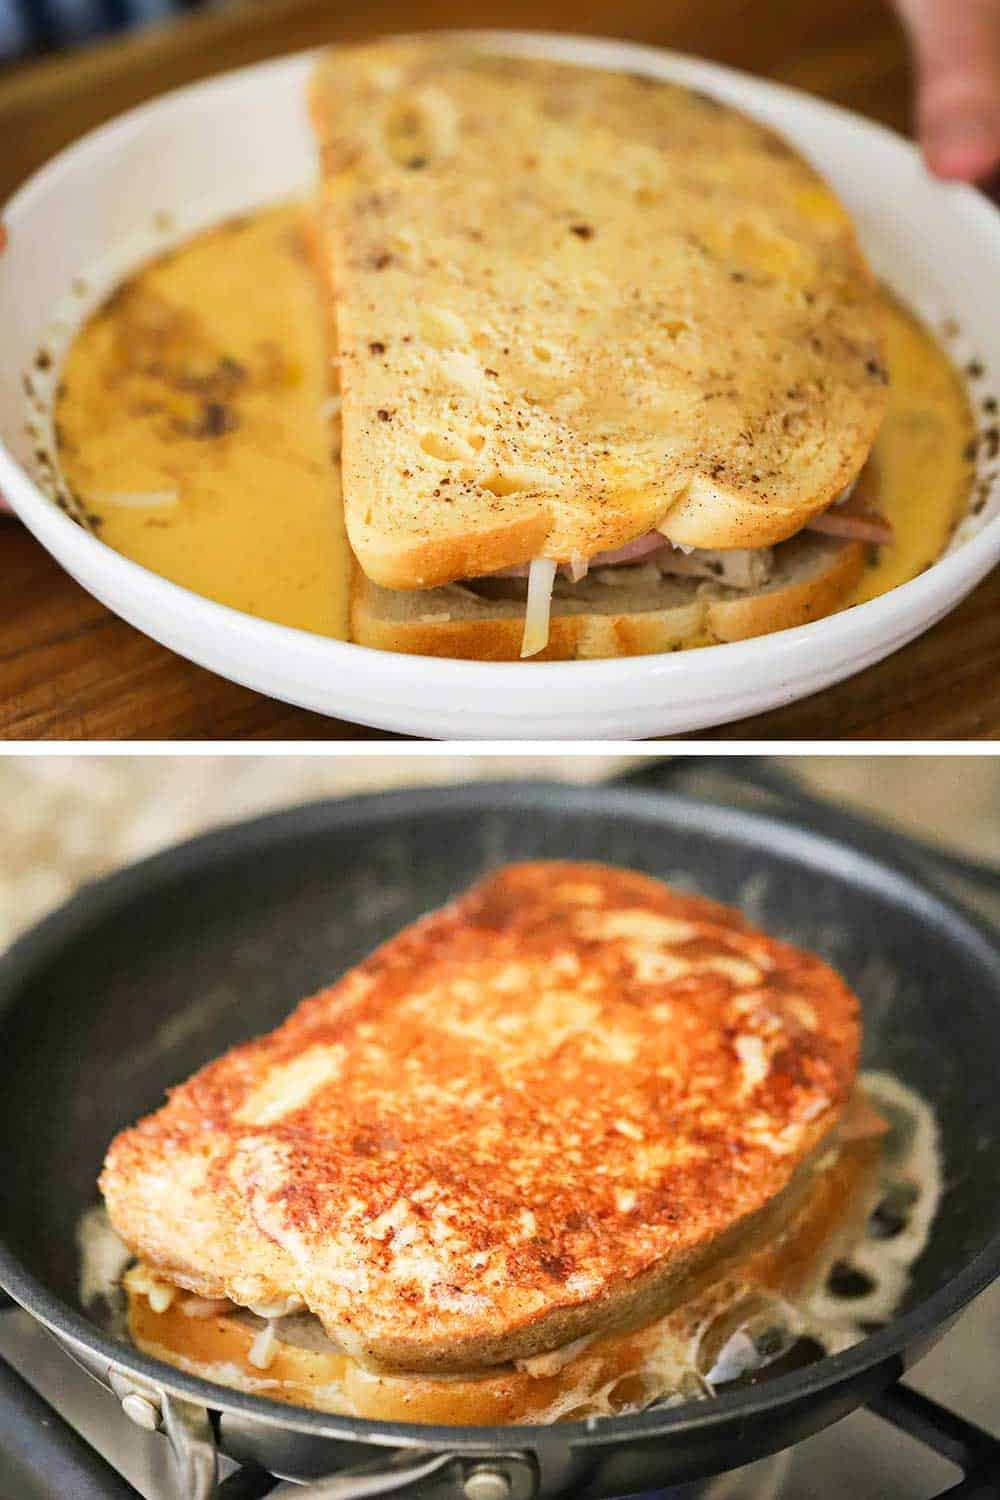 A sandwich filled with ham, turkey, and Gruyere cheese sitting in a bowl of beaten eggs and then that sandwich cooked in a skillet with the bread brown and crisp.